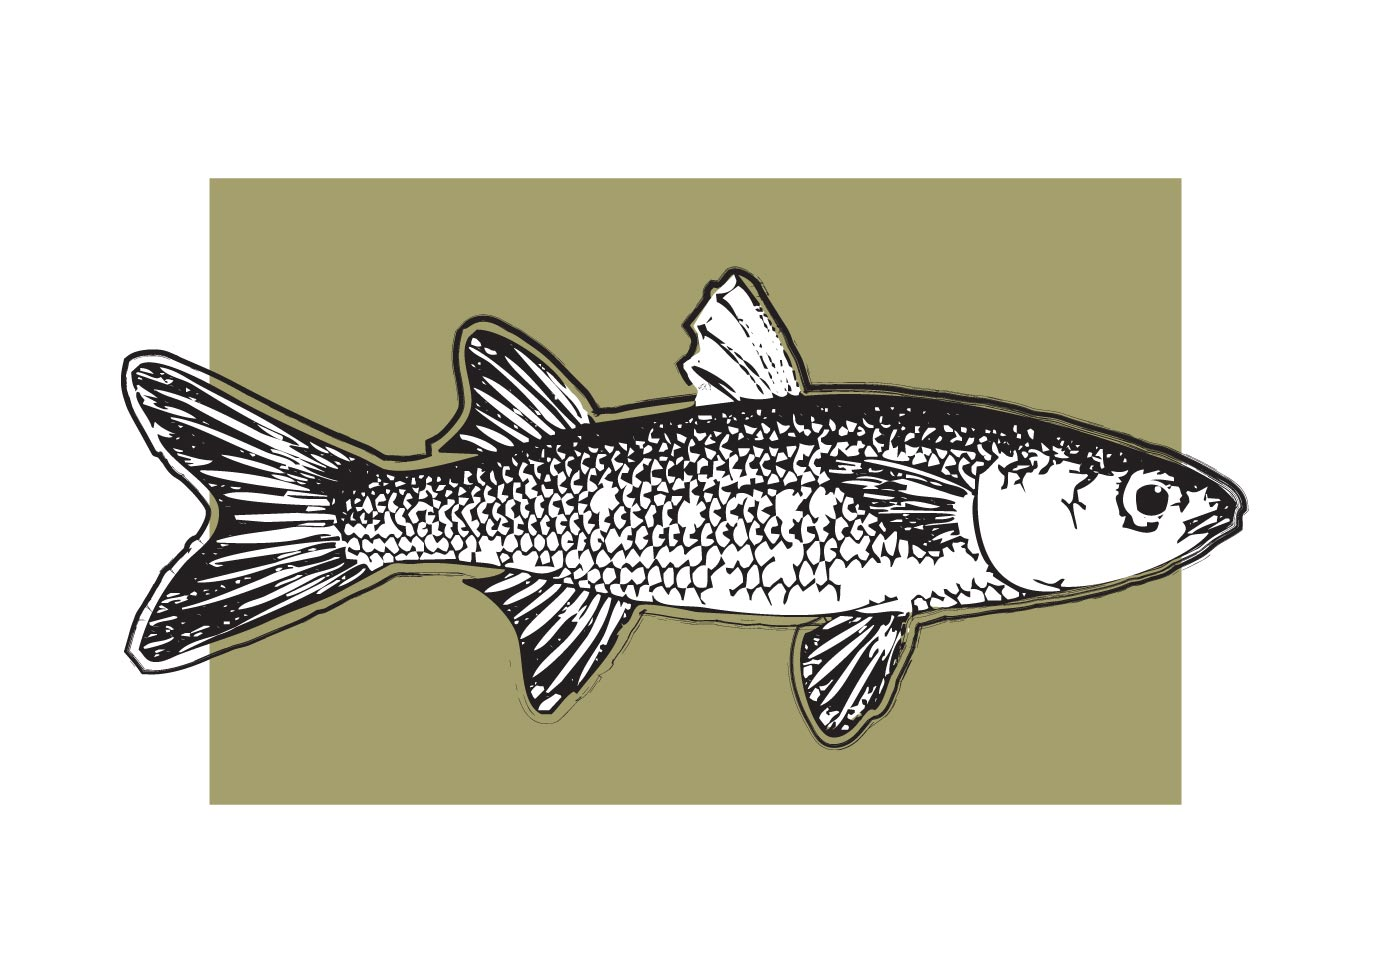 Mullet fish vector free vector art at vecteezy for Pictures of mullet fish